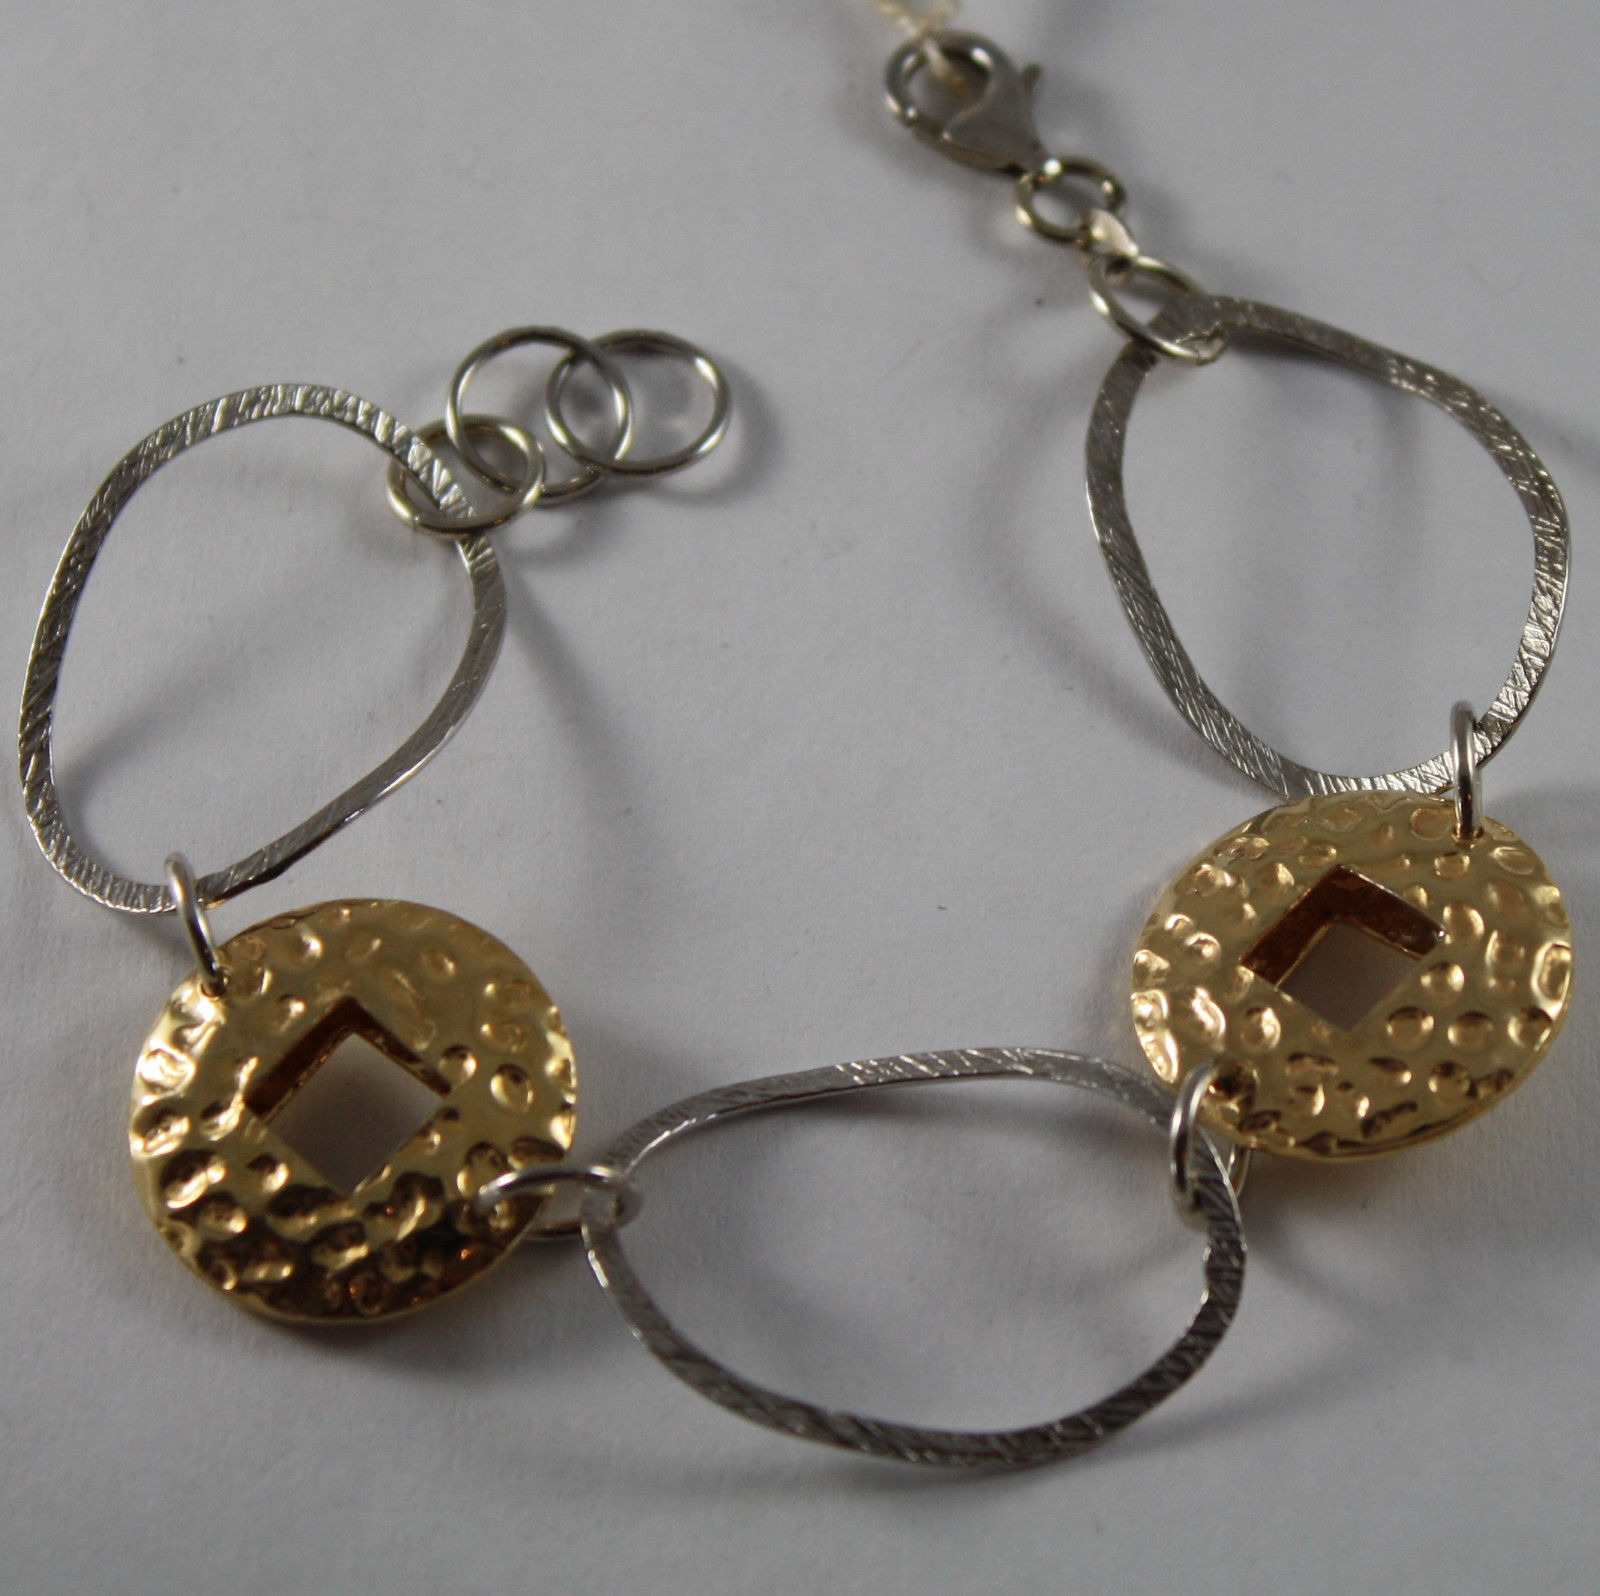 .925 RHODIUM SILVER AND YELLOW GOLD PLATED BRACELET WITH DISCS AND OVAL